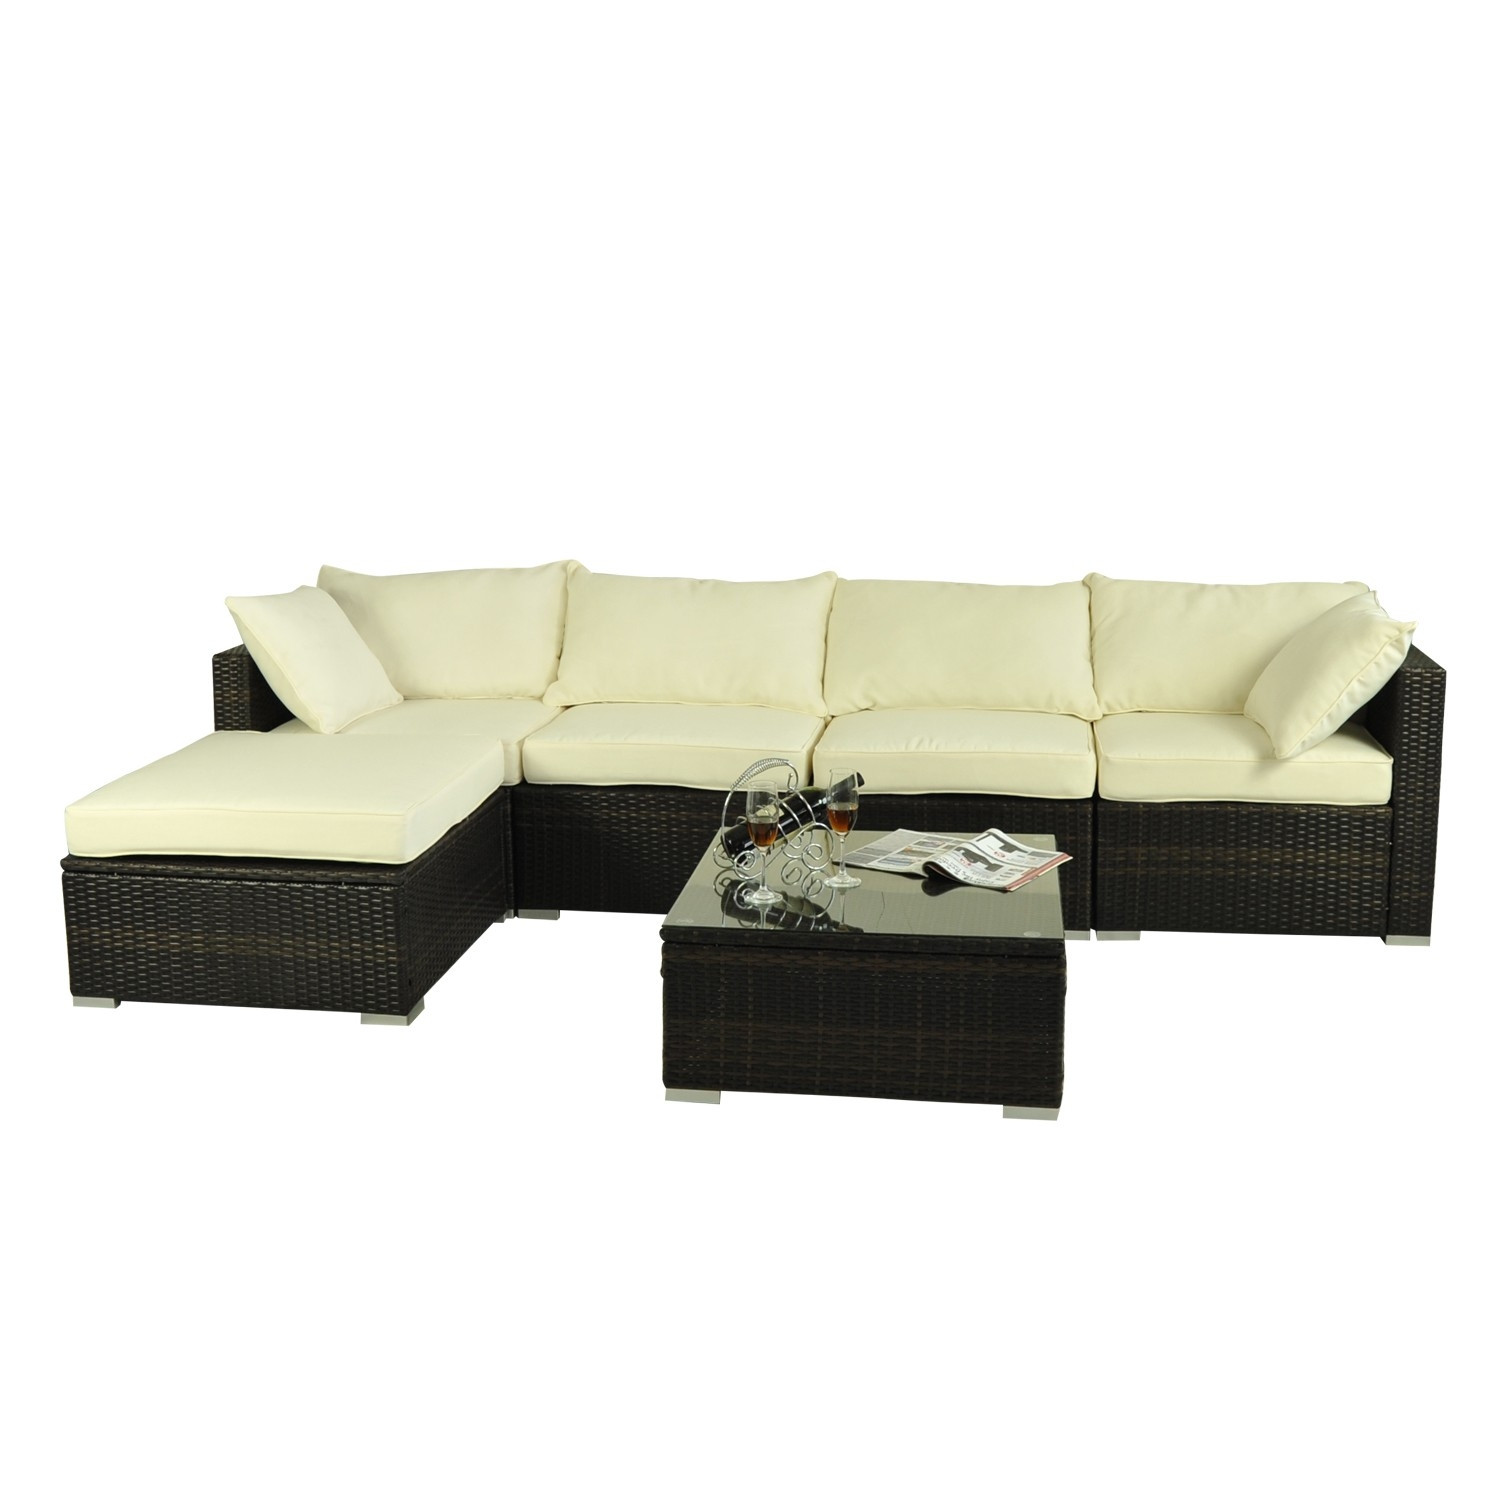 Best ideas about Outsunny Patio Furniture . Save or Pin Outsunny Patio Furniture Now.